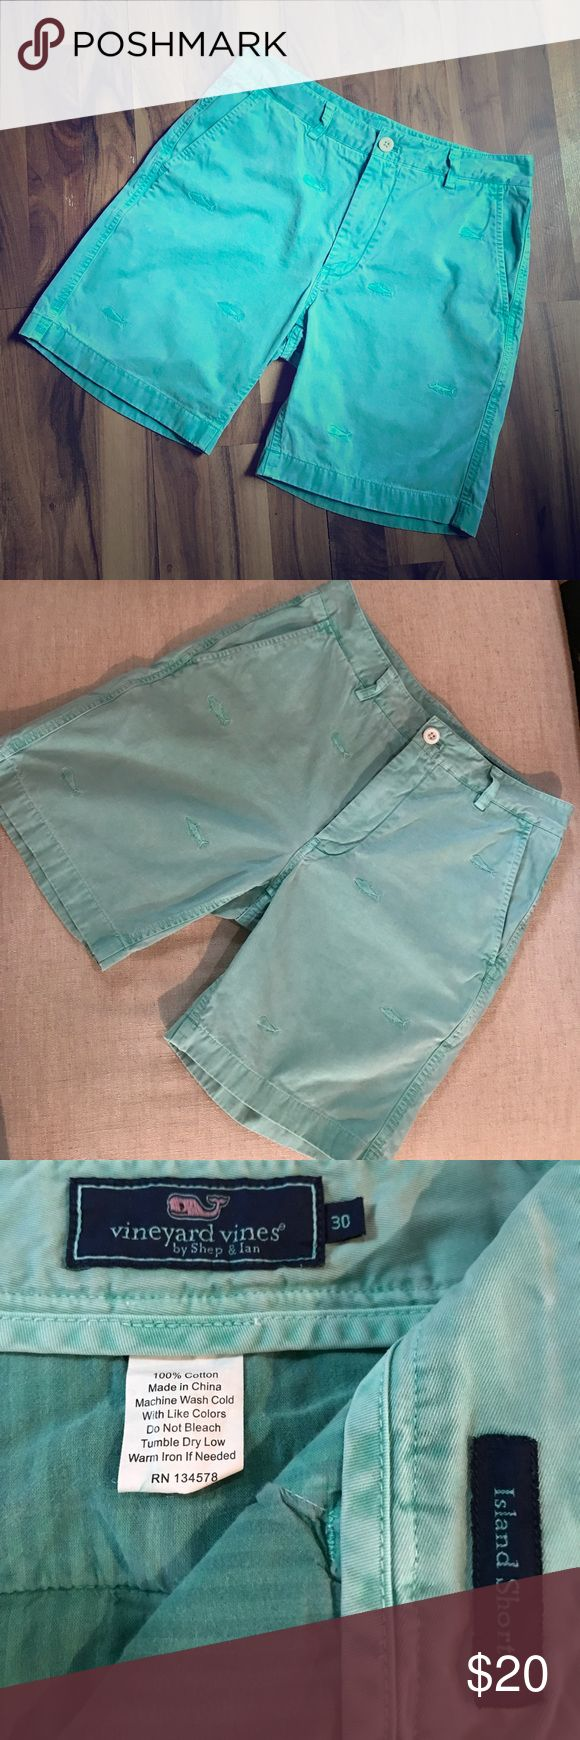 Men's Vineyard vines embroidered shorts. These Vineyard vines island shorts are perfect for vacation or a day out! . They are in good worn condition. (Price reflects use). The color is a light green. And the color is slightly faded. Vineyard Vines Shorts Flat Front